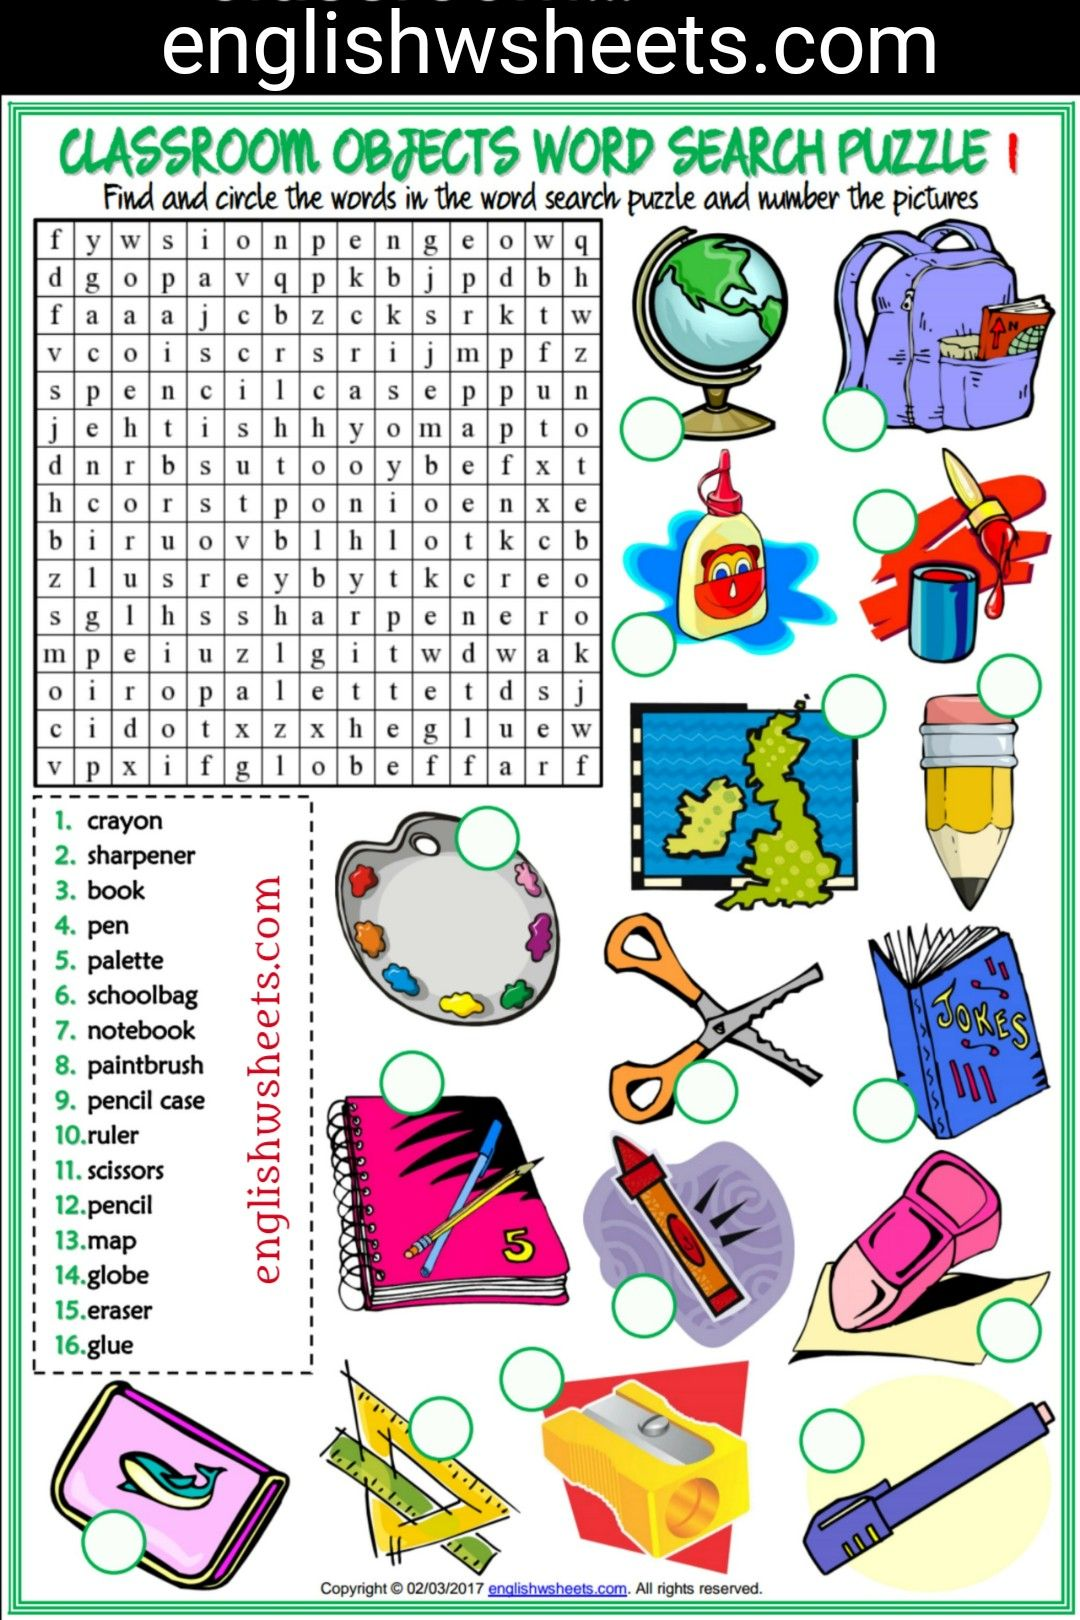 Classroom Objects Esl Printable Word Search Puzzle Worksheets For Kids Classroom Objects Esl